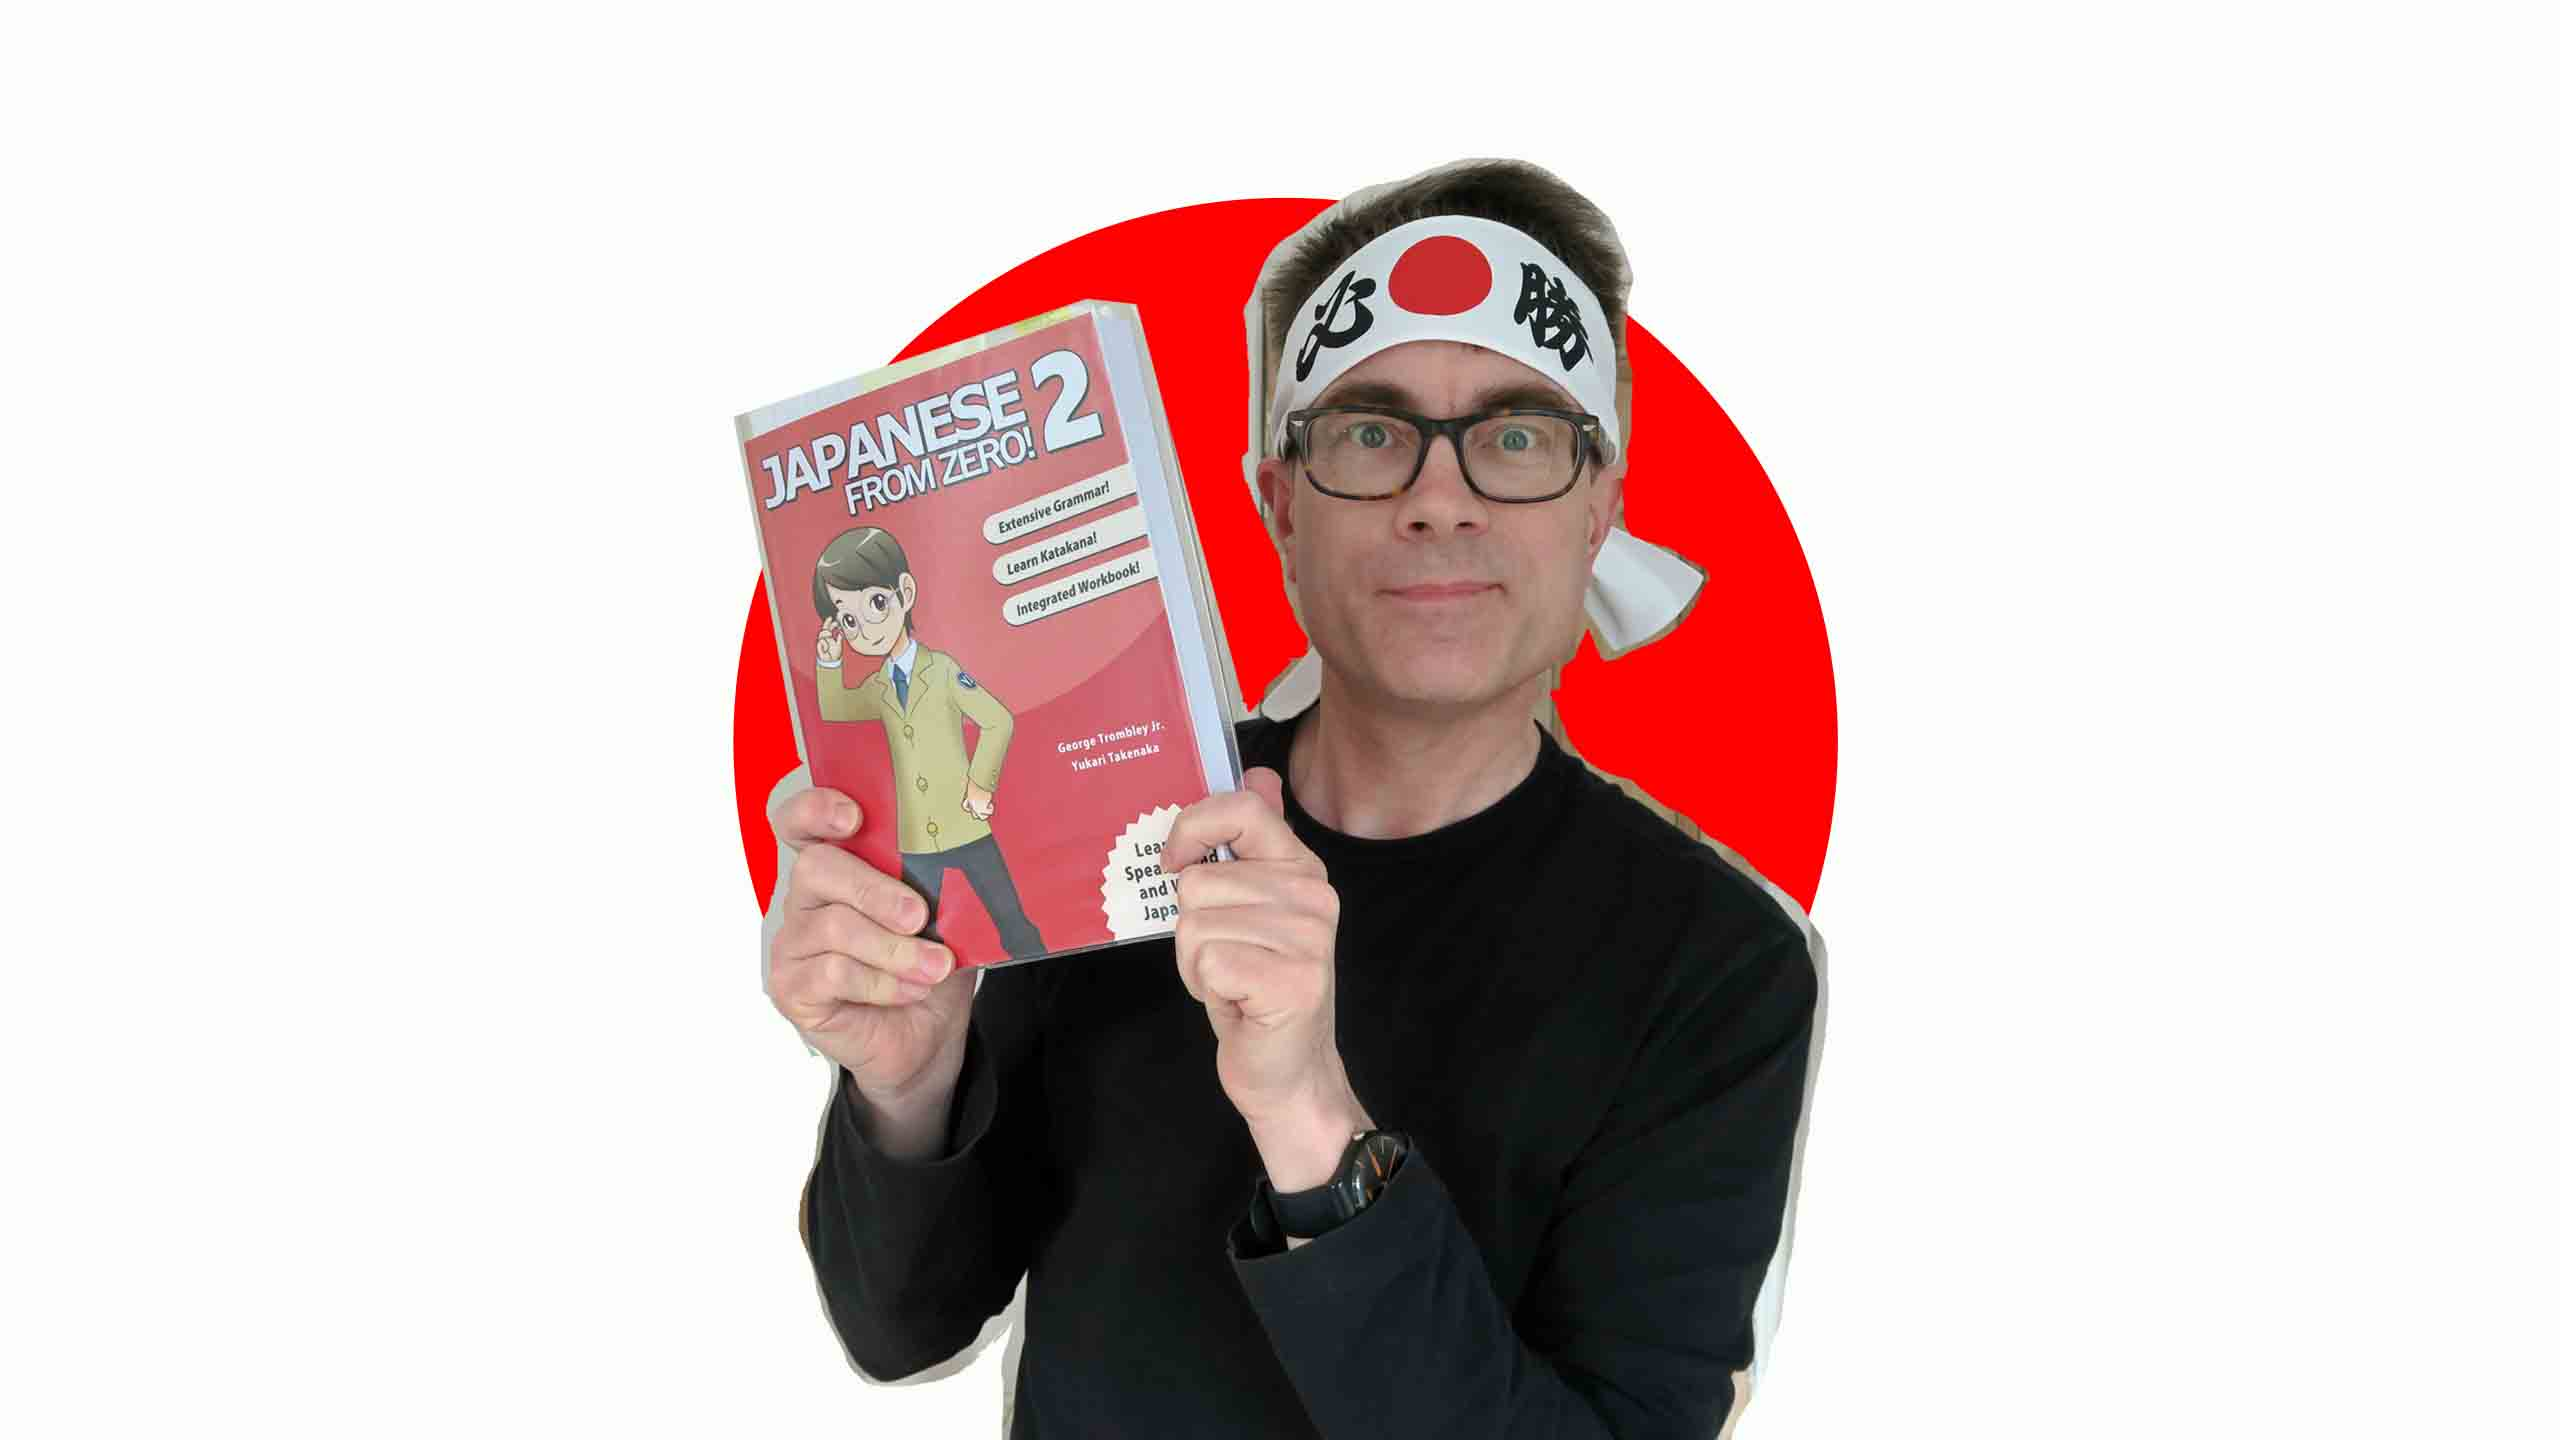 Basic-Intermediate Compact Disc Edition Japanese Complete Course